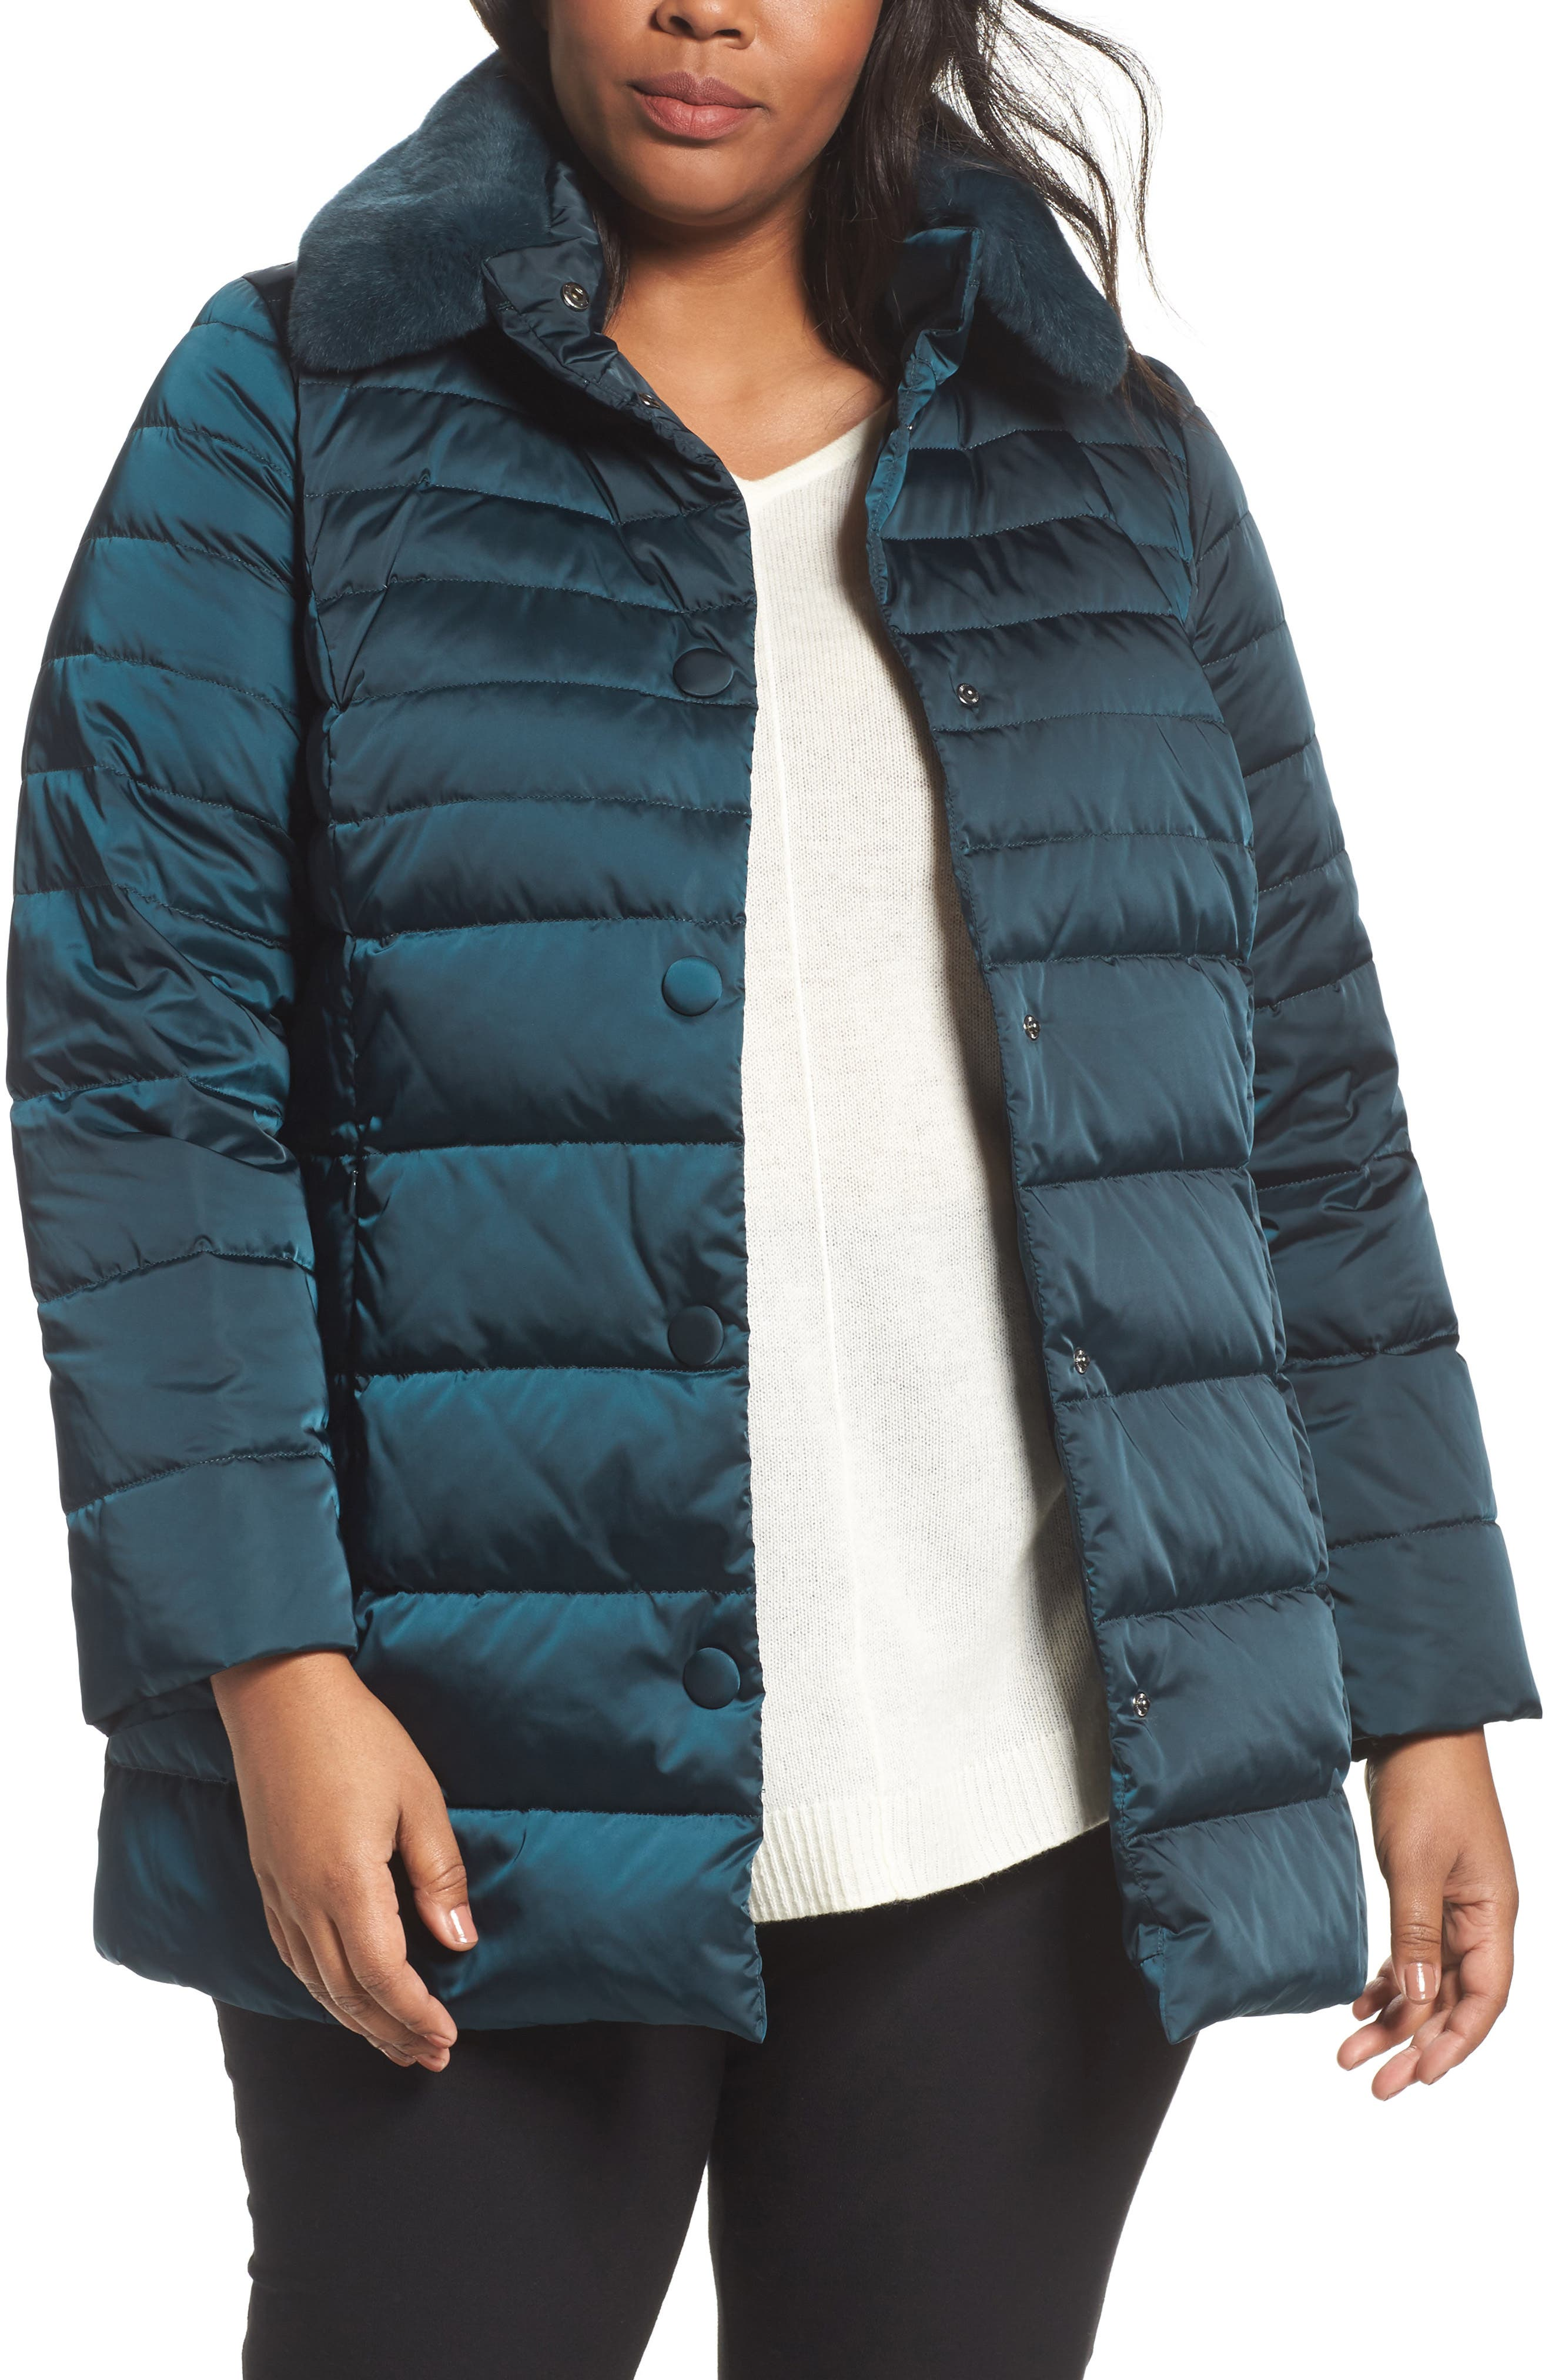 Persona by Marina Rinaldi Quilted Puffer Jacket with Genuine Rabbit Fur Trim (Plus Size)